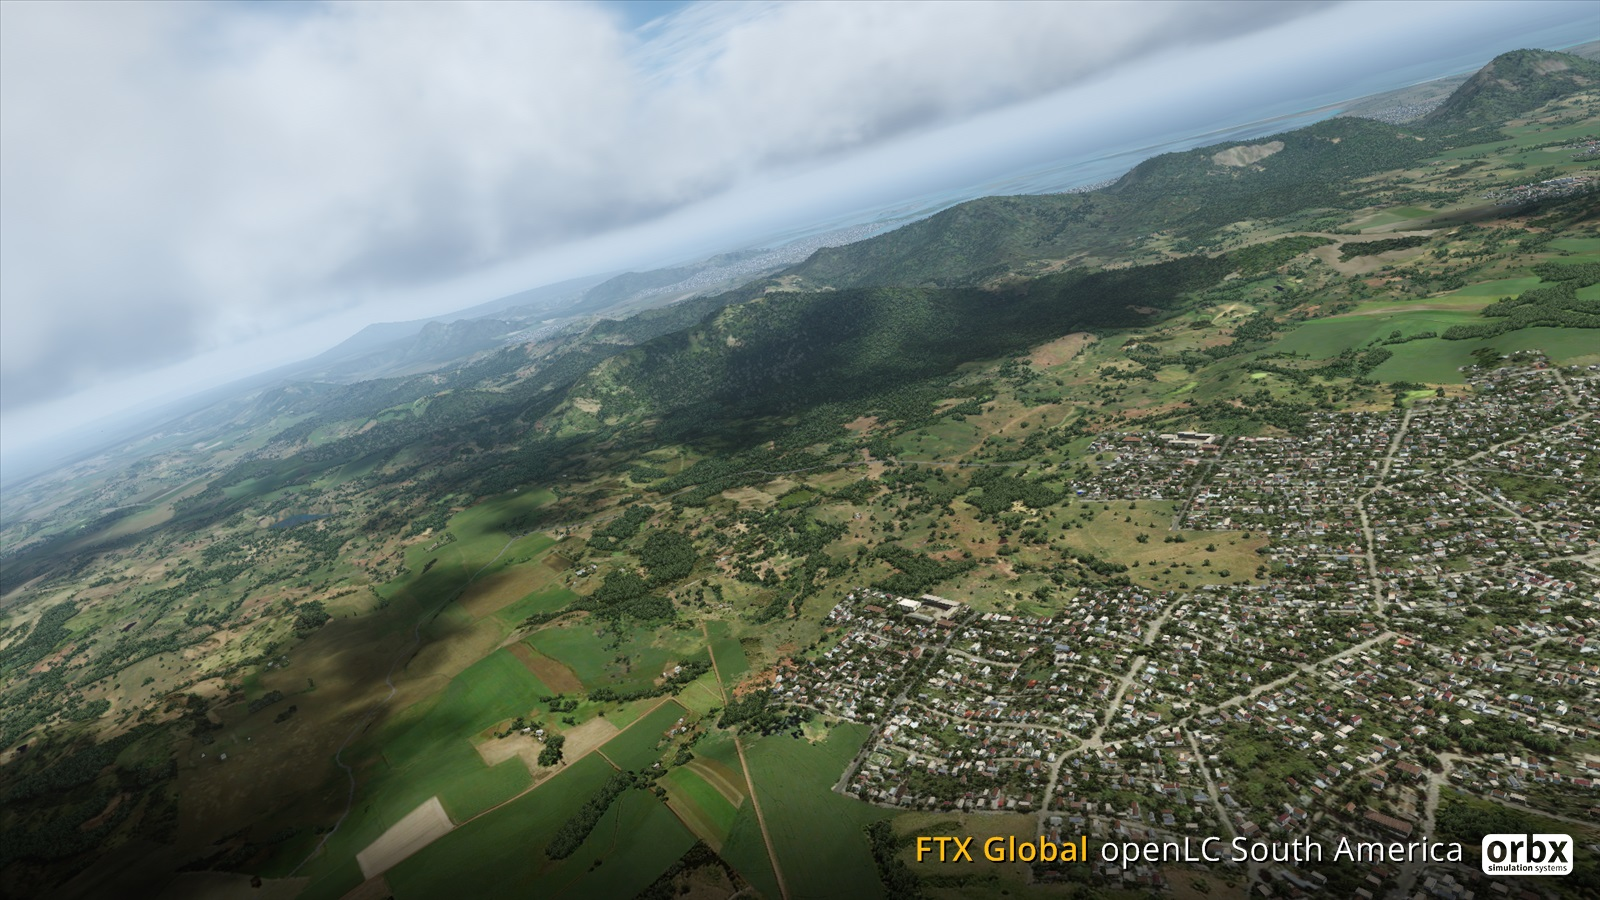 Orbx FTX Open LC South America – Brazil and the Amazon in